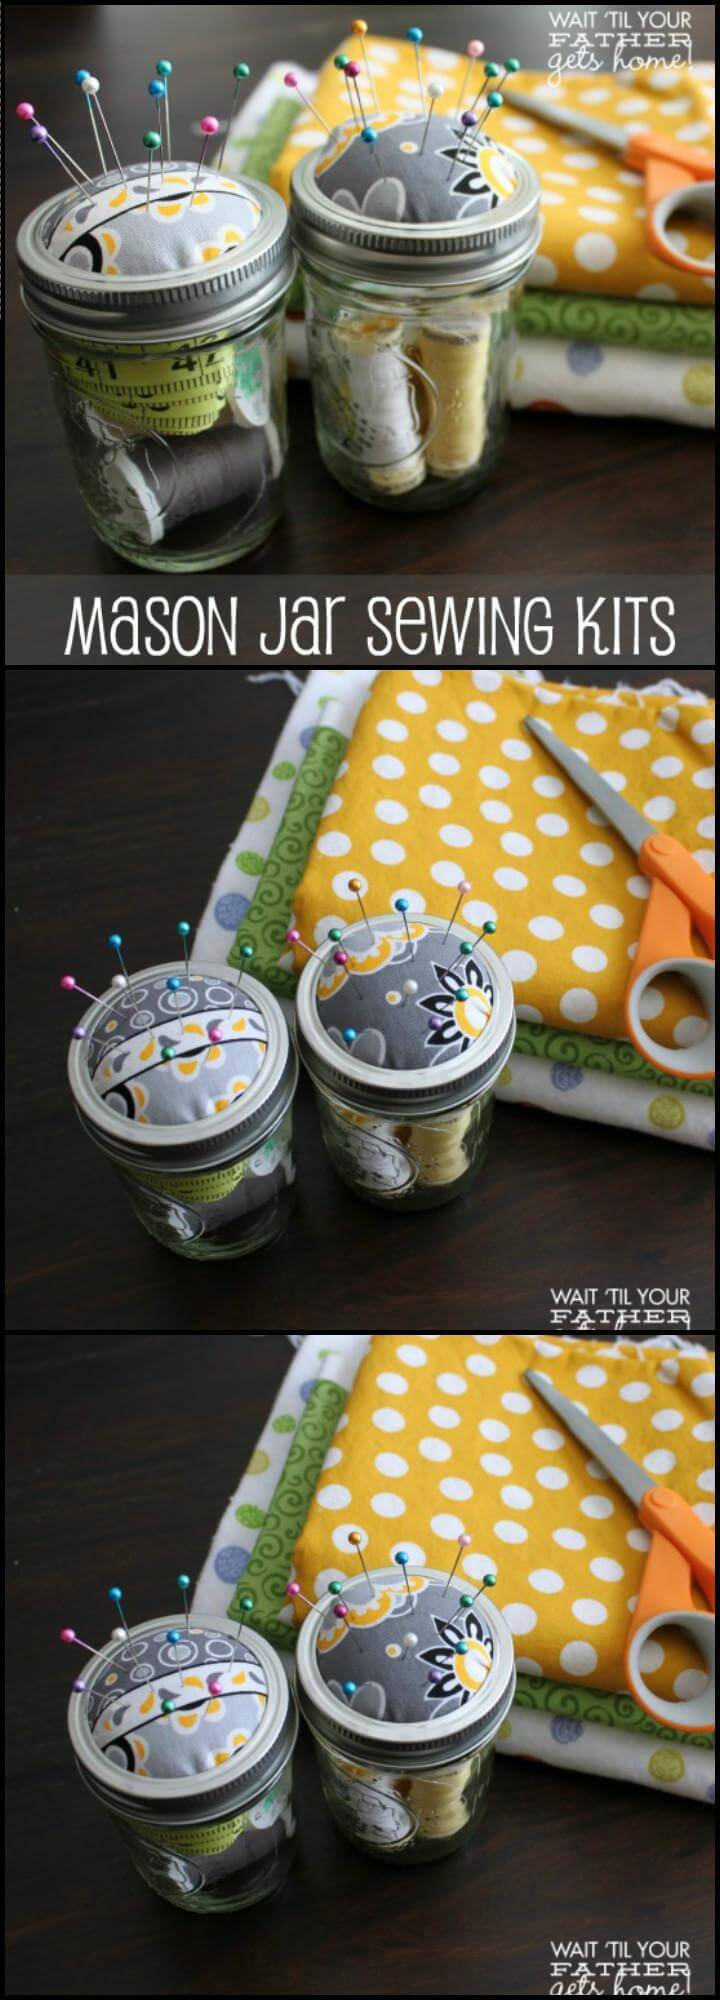 repurposed Mason jar sewing kit Mother's Day gift idea